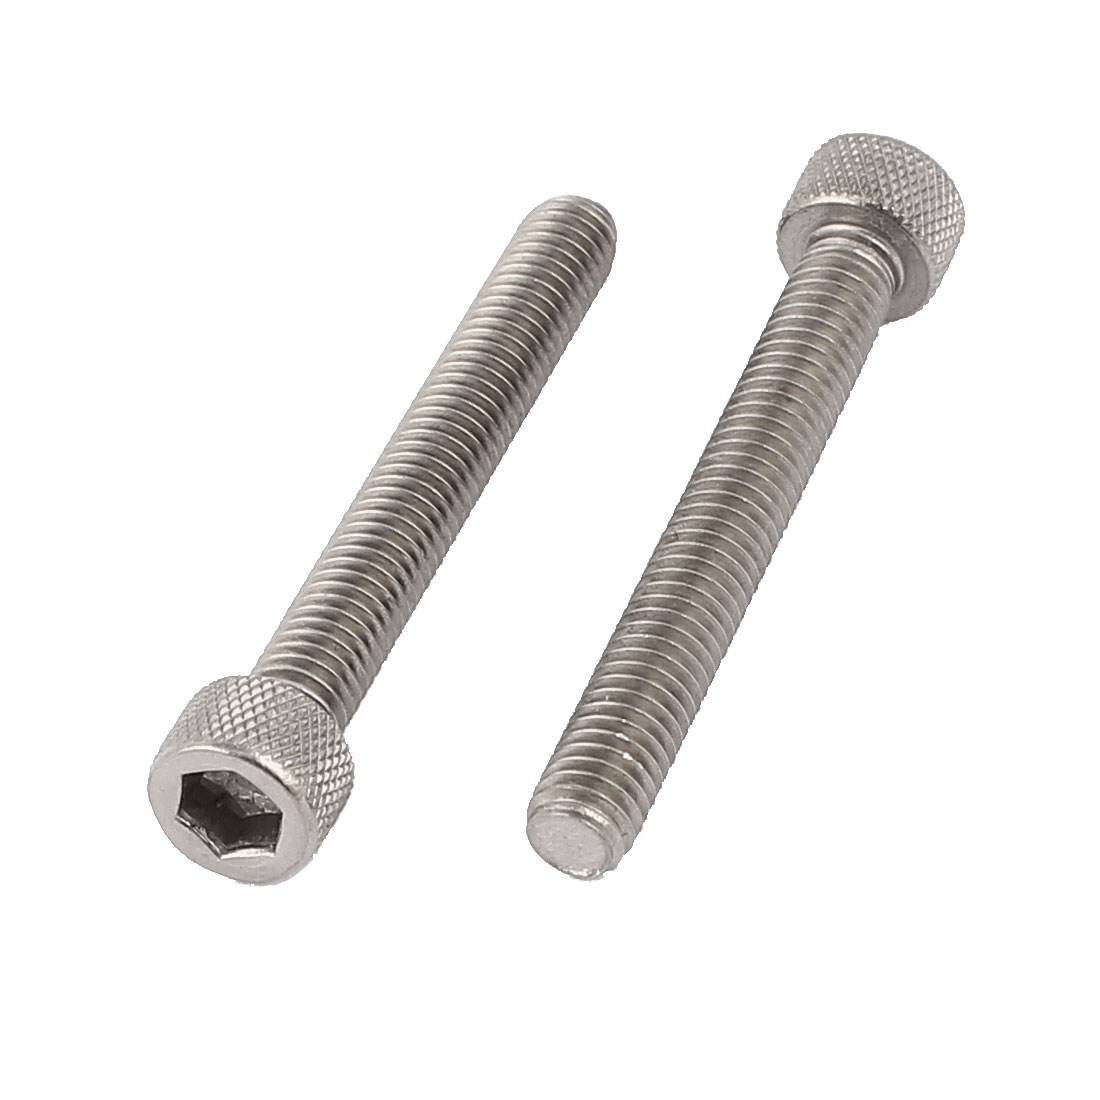 M6 x 45mm Stainless Steel Hex Head Cap Socket Screw Bolt Hardware 2pcs